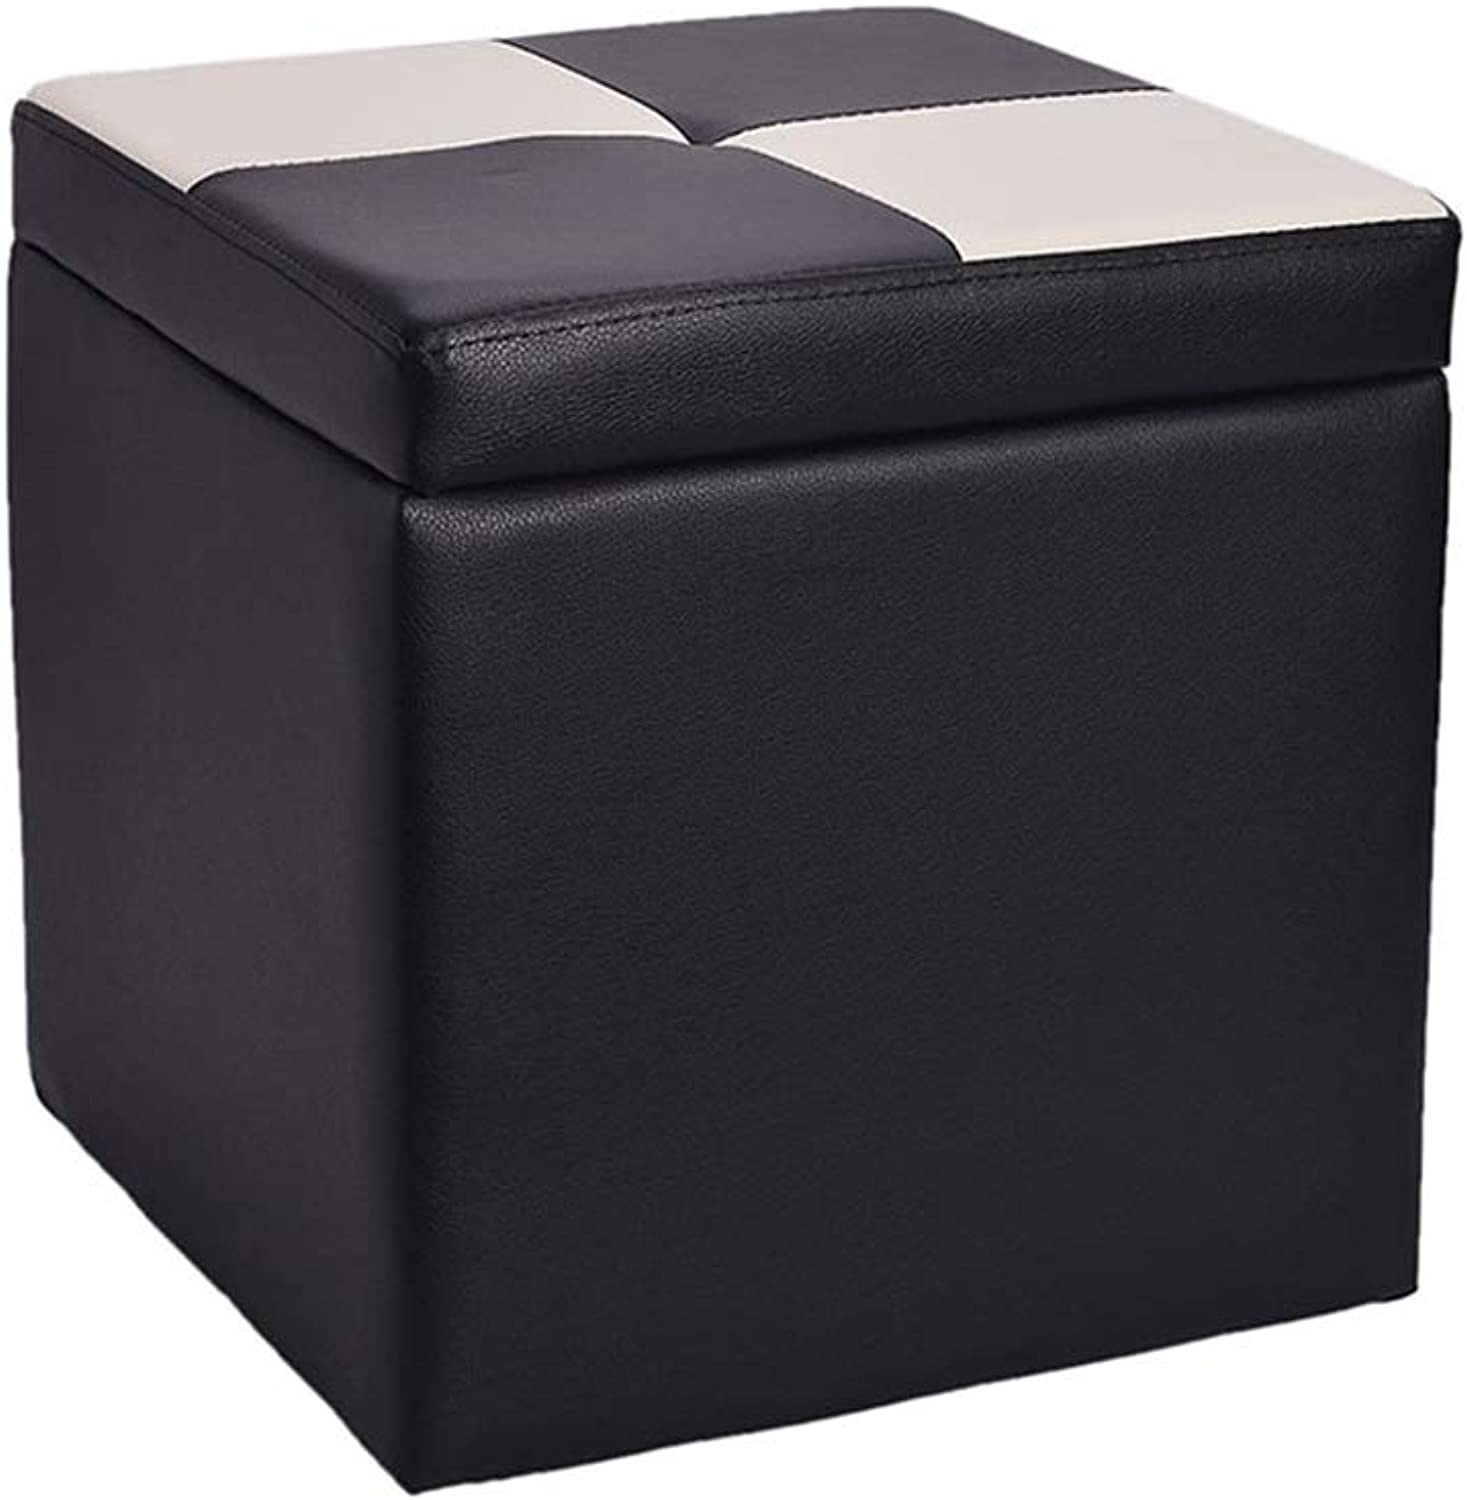 Footstool Sofa Creative Storage Stool Wooden Change shoes Stool PU Faux Leather Footstool Pouffe Footrest Single Seat Cube Box(Black) Upholstered Wood (color    1)